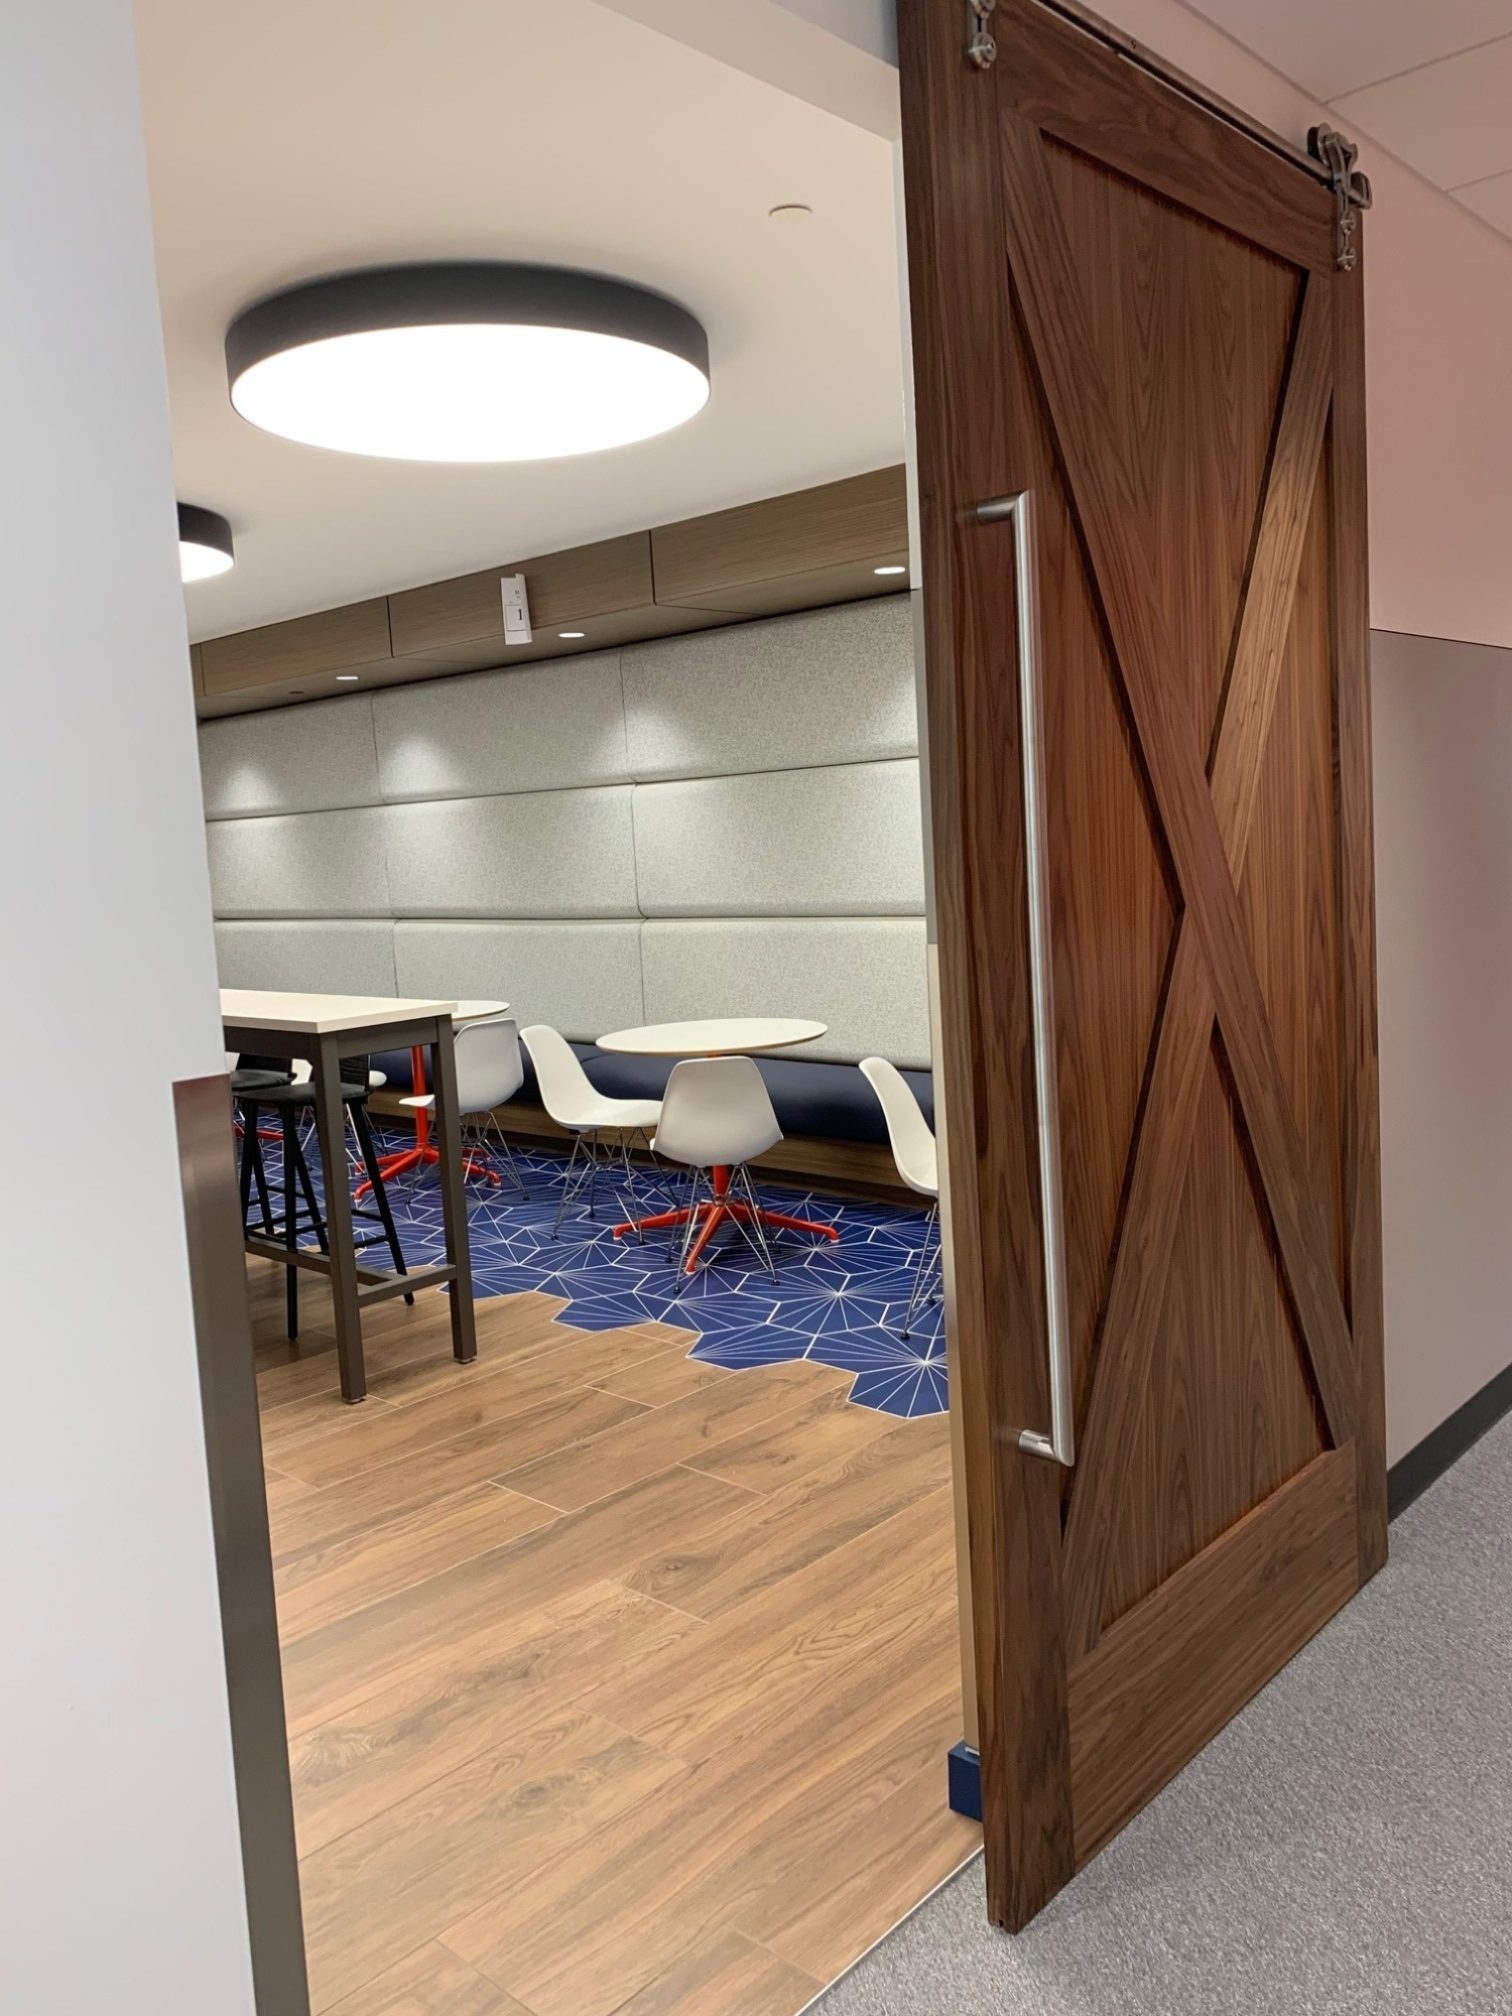 A sliding barn door opening into a dining area at the Goodman Campbell Brain and Spine center